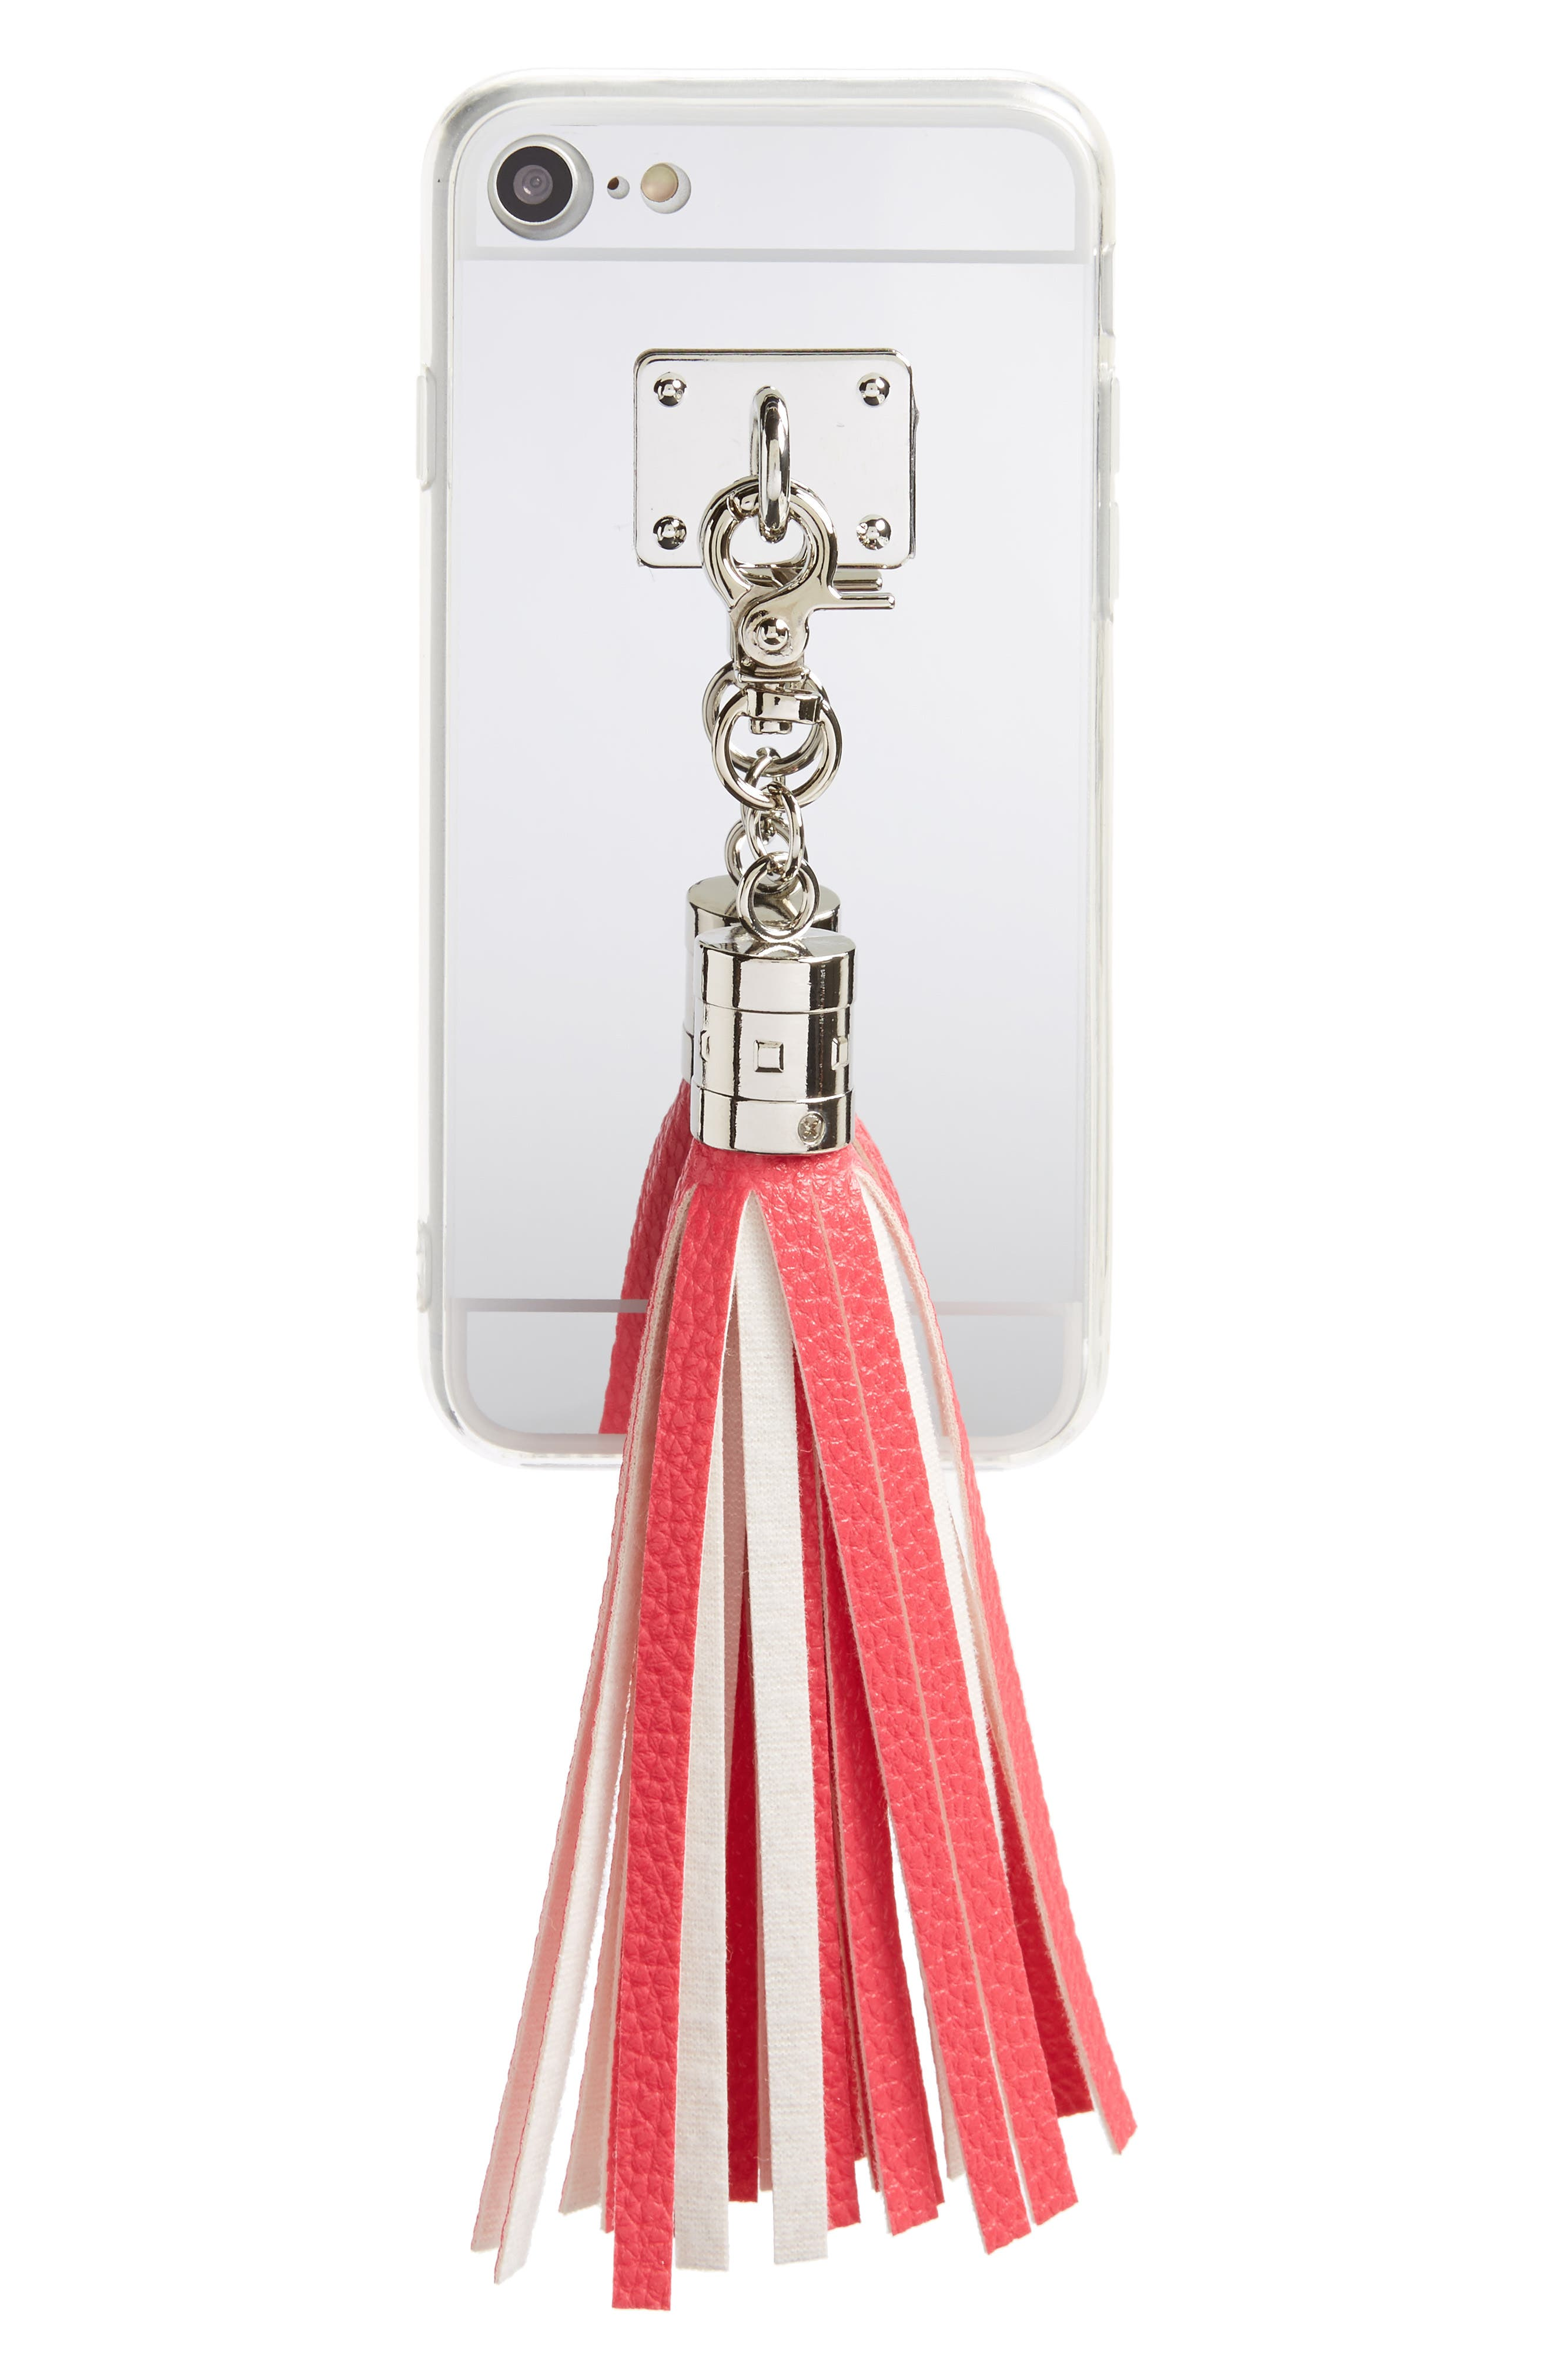 Mirrored Tassel iPhone 7 Case,                             Main thumbnail 1, color,                             Pink/Silver